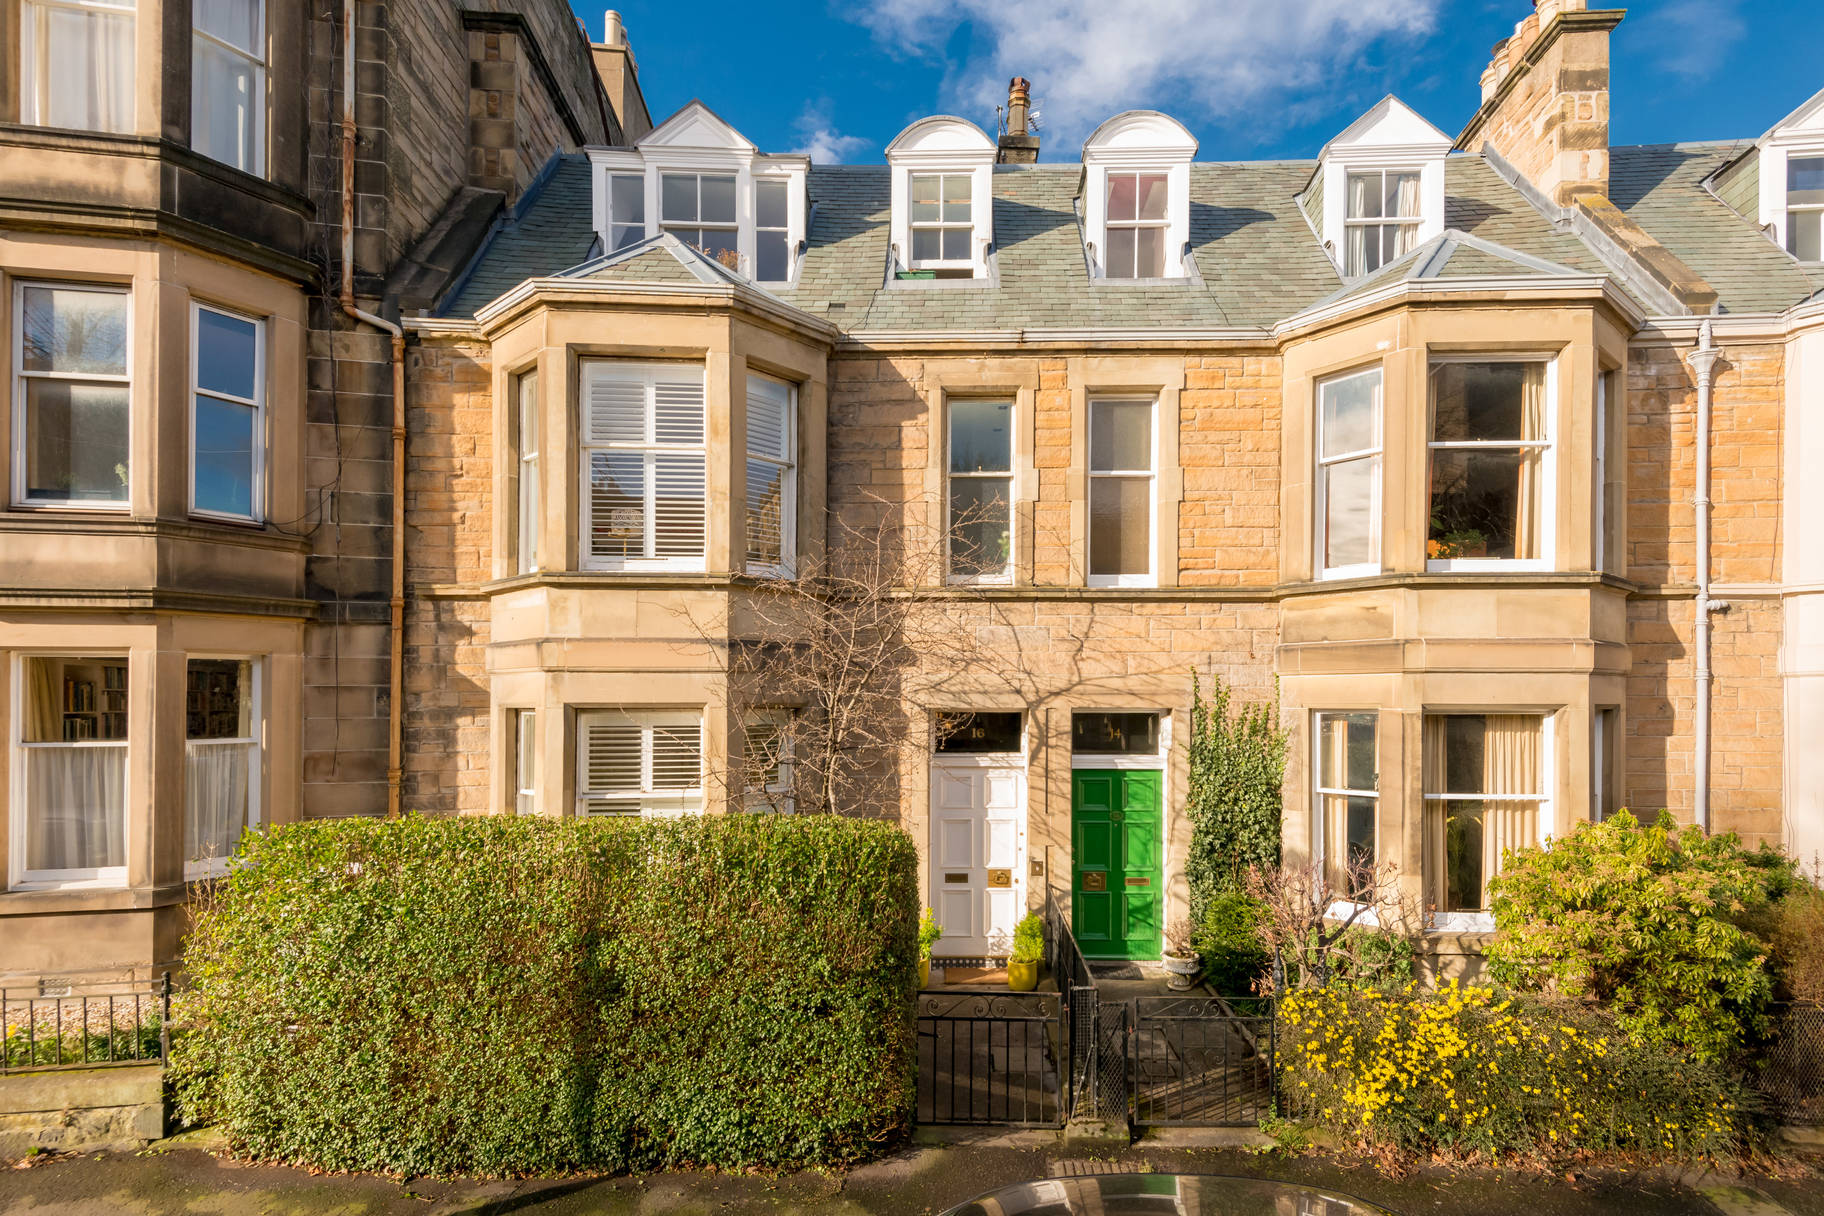 16 Mardale Crescent, Merchiston, Edinburgh, EH10 5AG